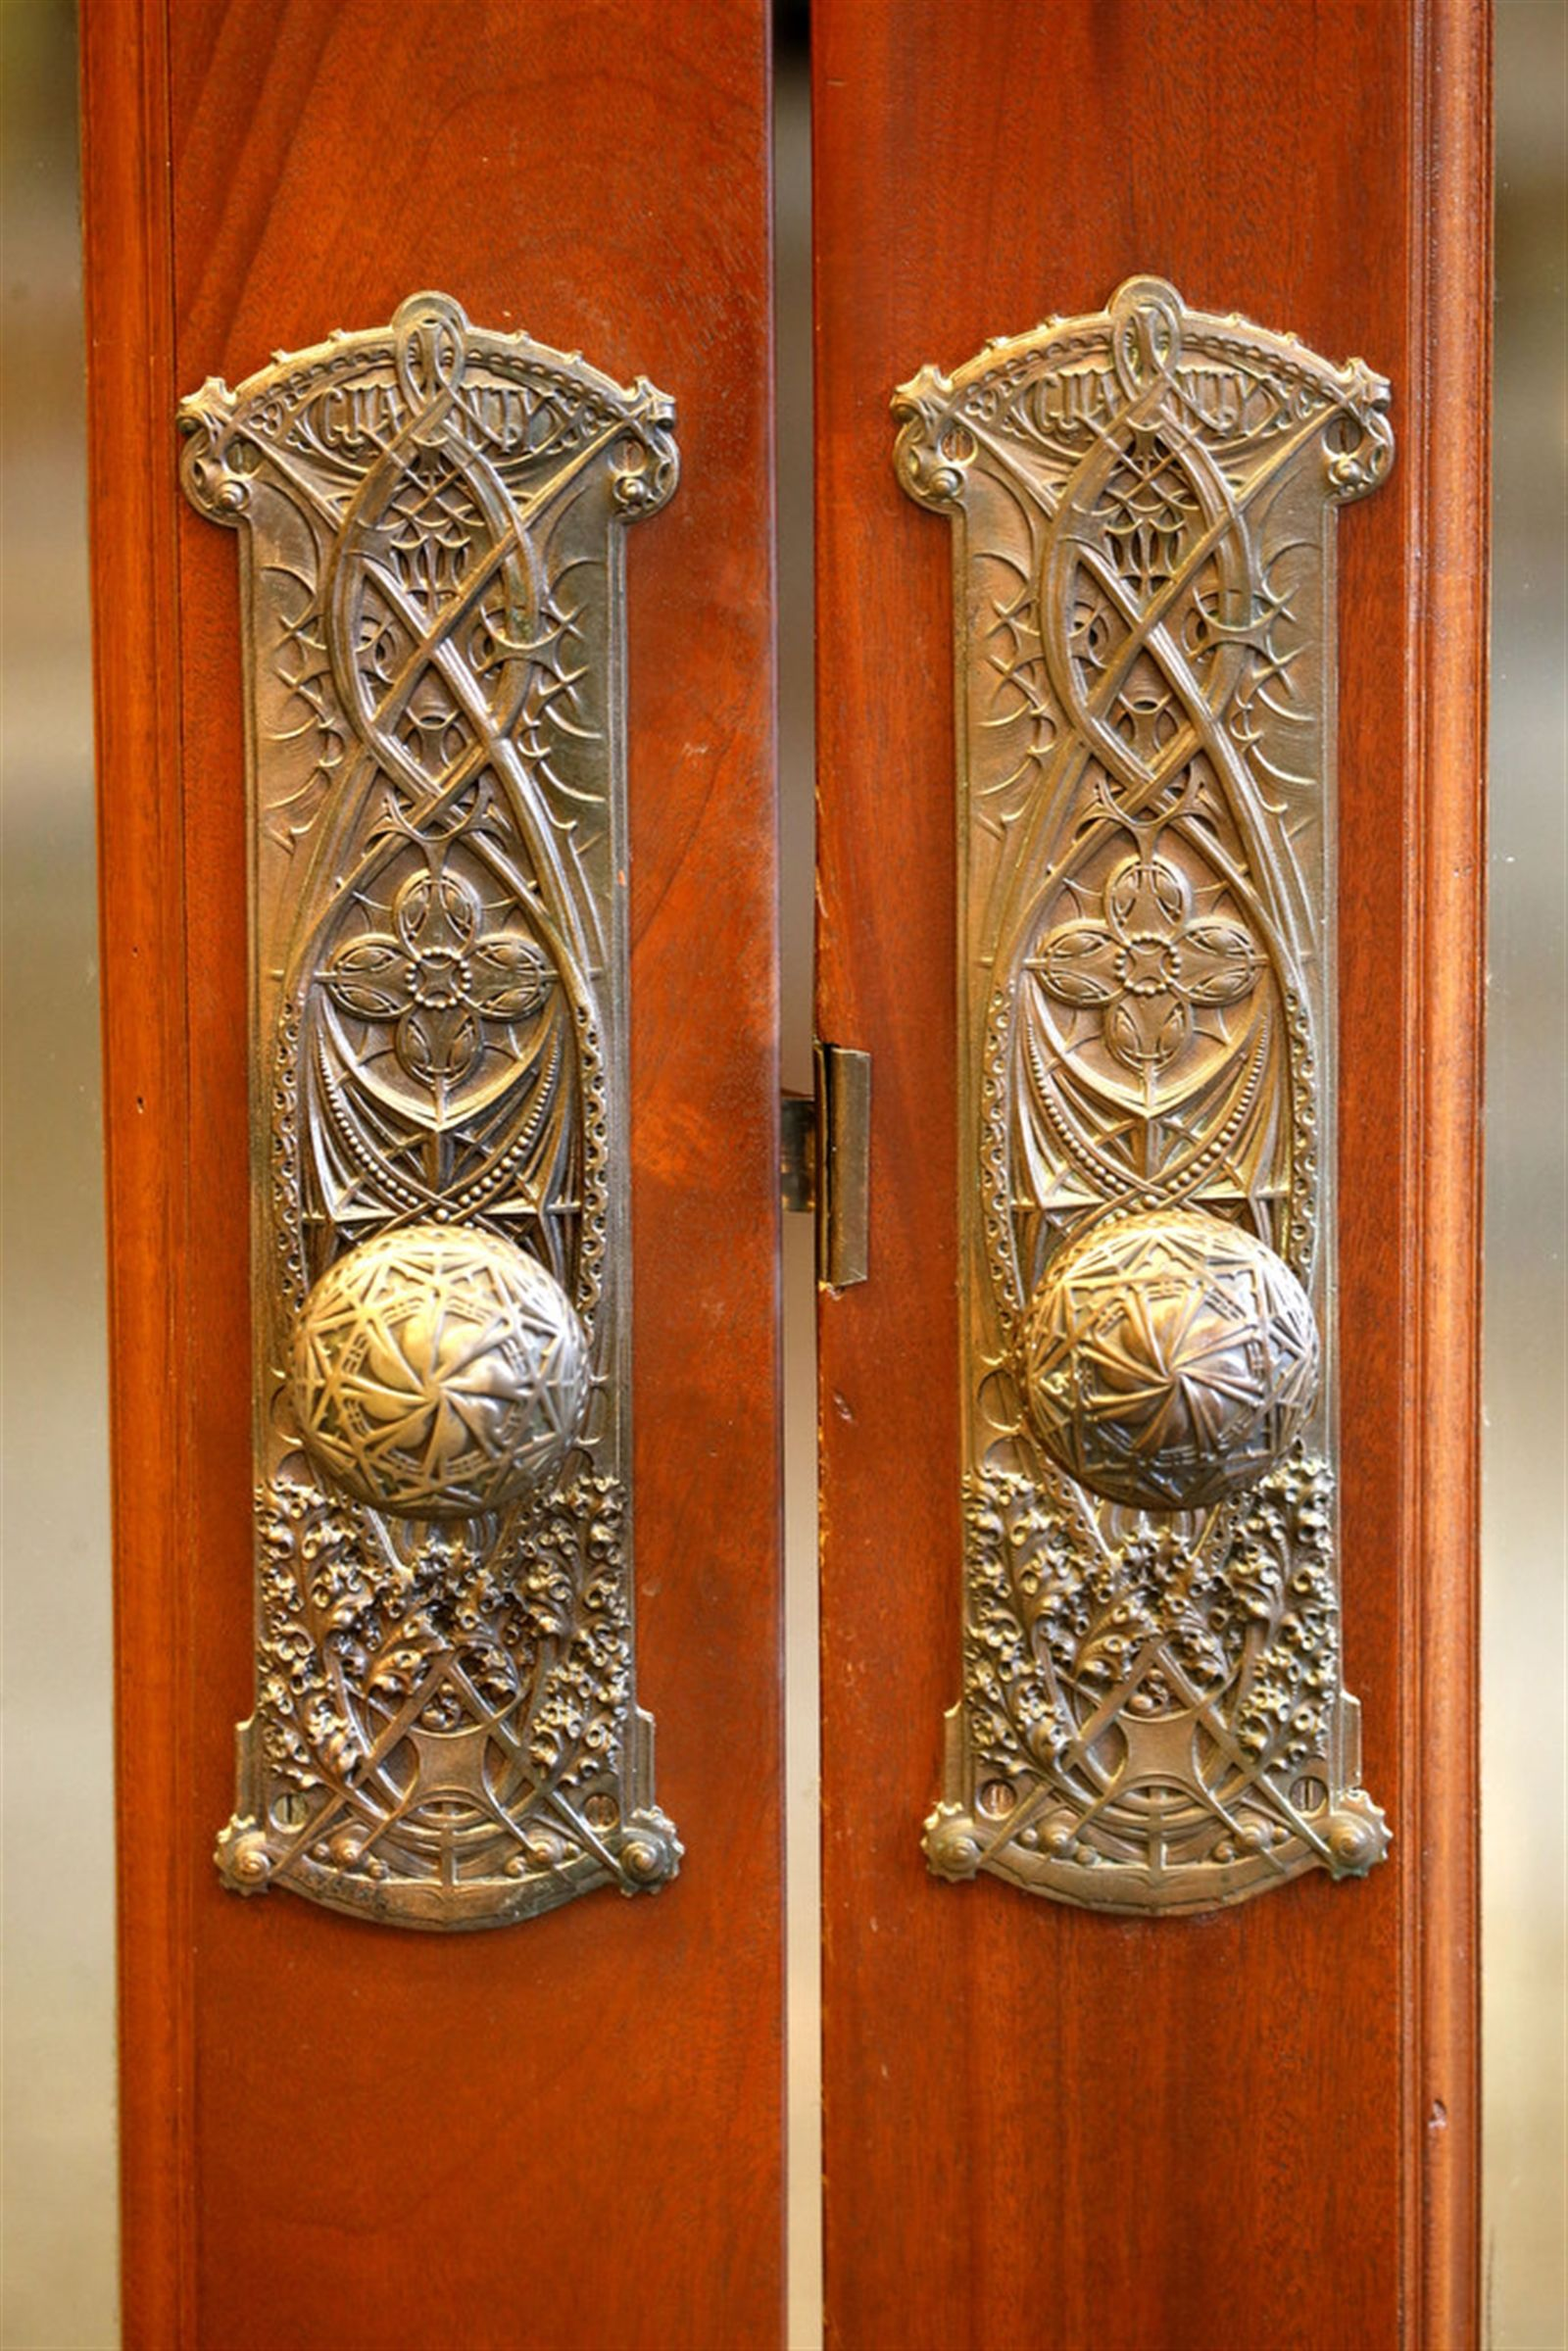 Interior Brass Door Pulls Guaranty Building Buffalo Ny